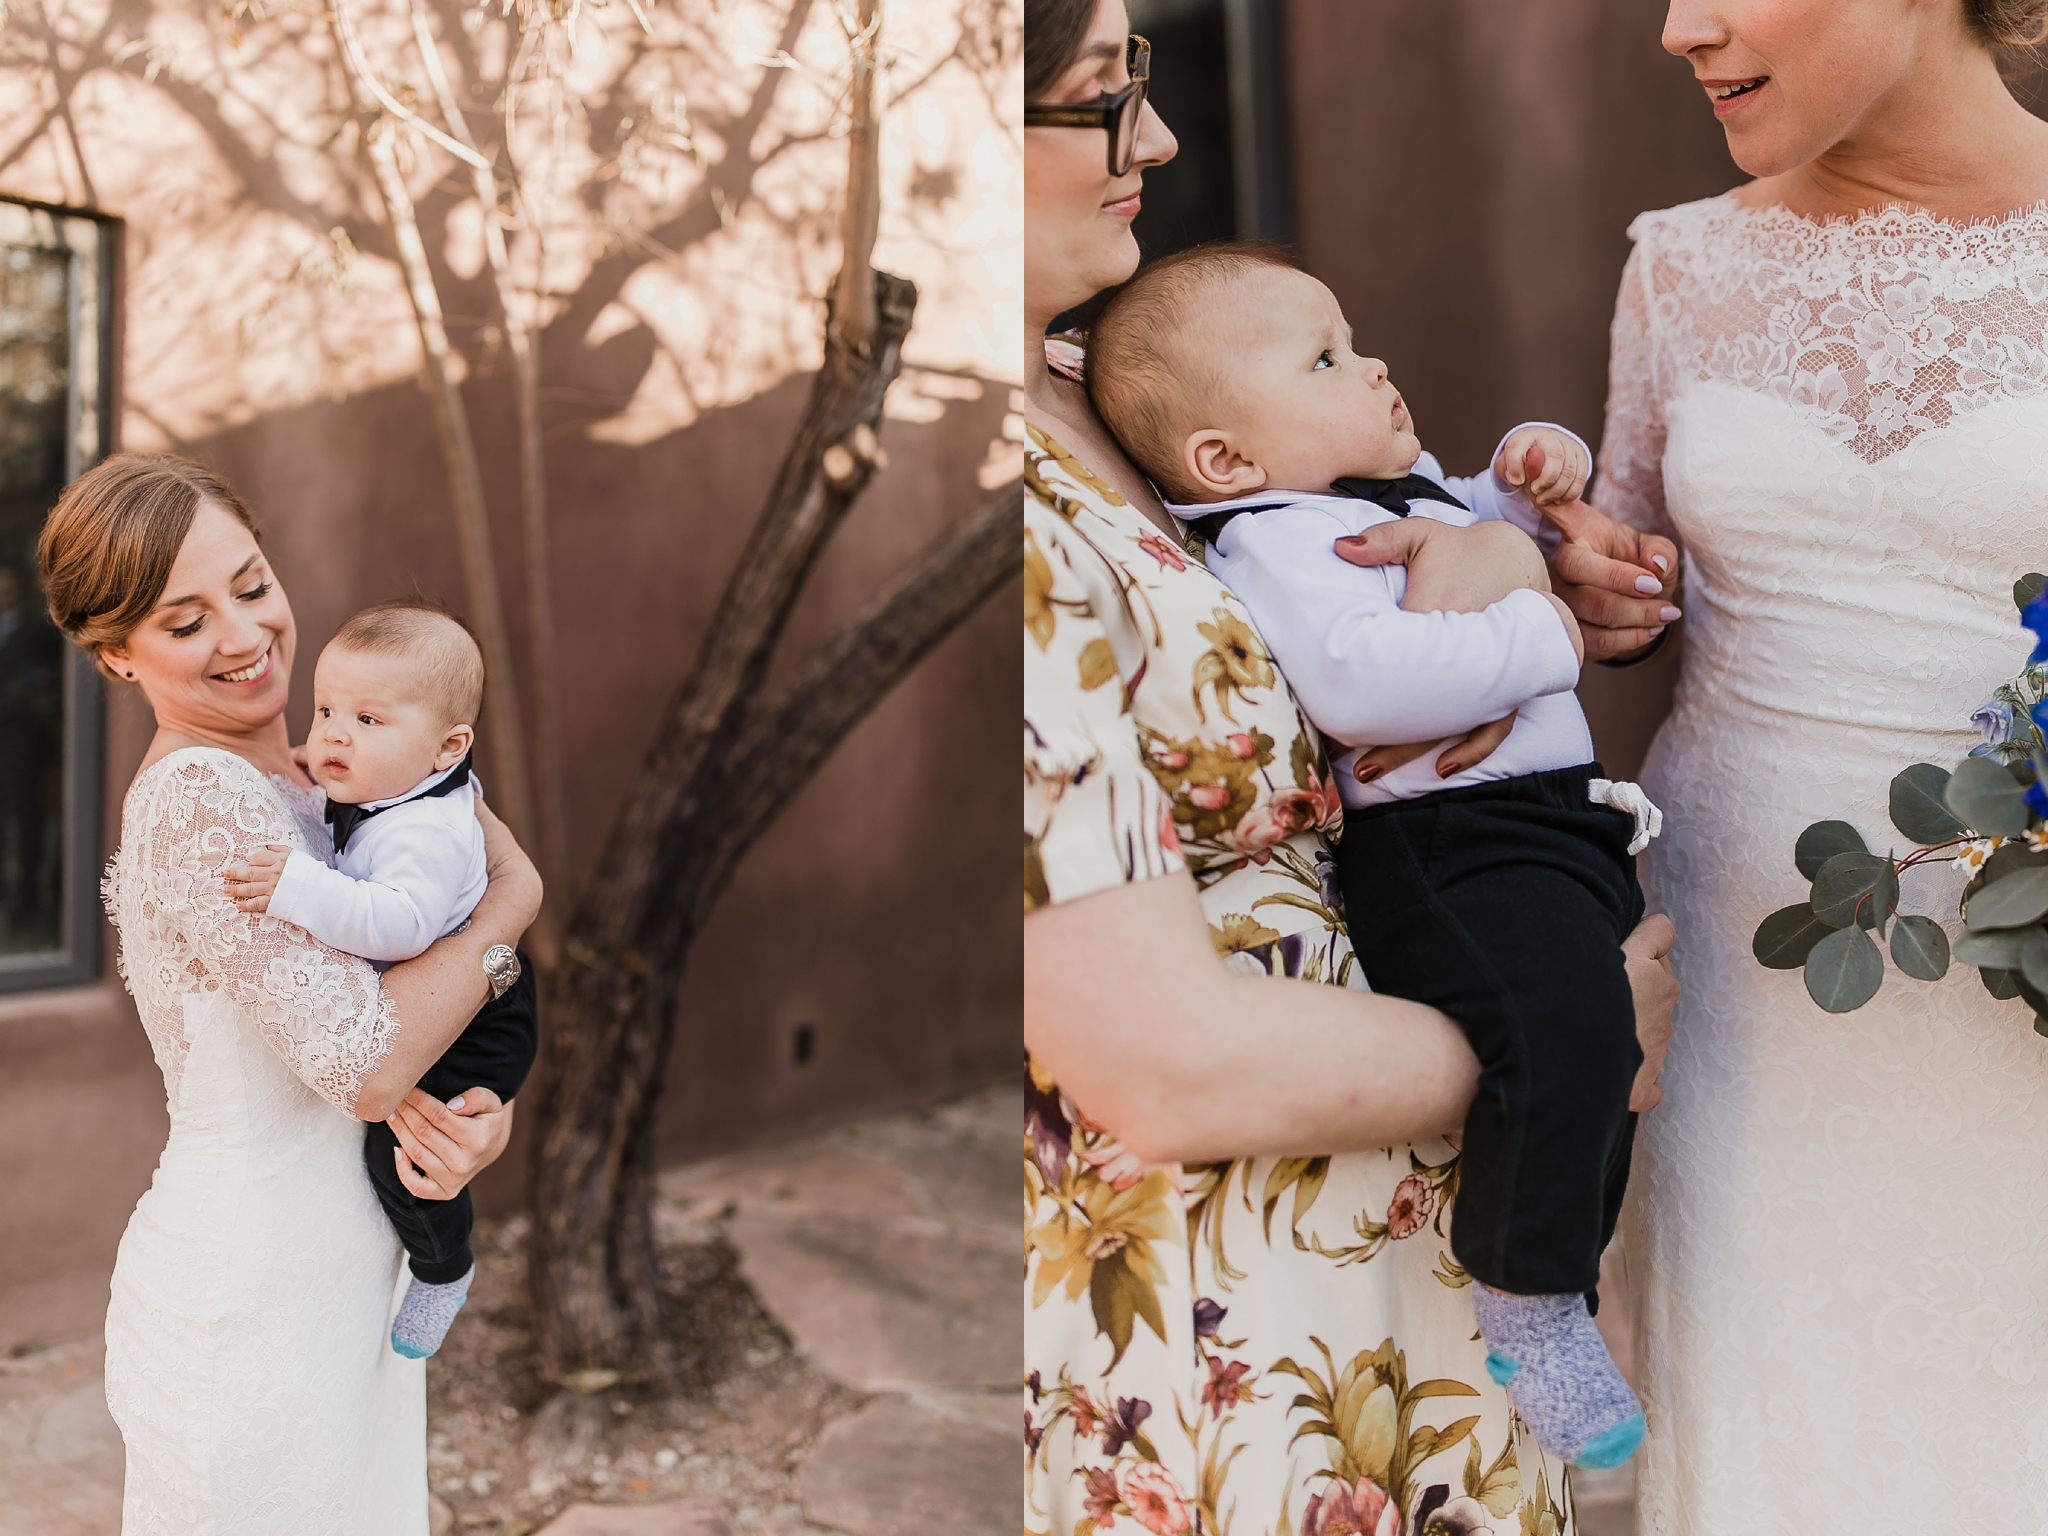 Alicia+lucia+photography+-+albuquerque+wedding+photographer+-+santa+fe+wedding+photography+-+new+mexico+wedding+photographer+-+albuquerque+wedding+-+sarabande+bed+breakfast+-+bed+and+breakfast+wedding_0092.jpg